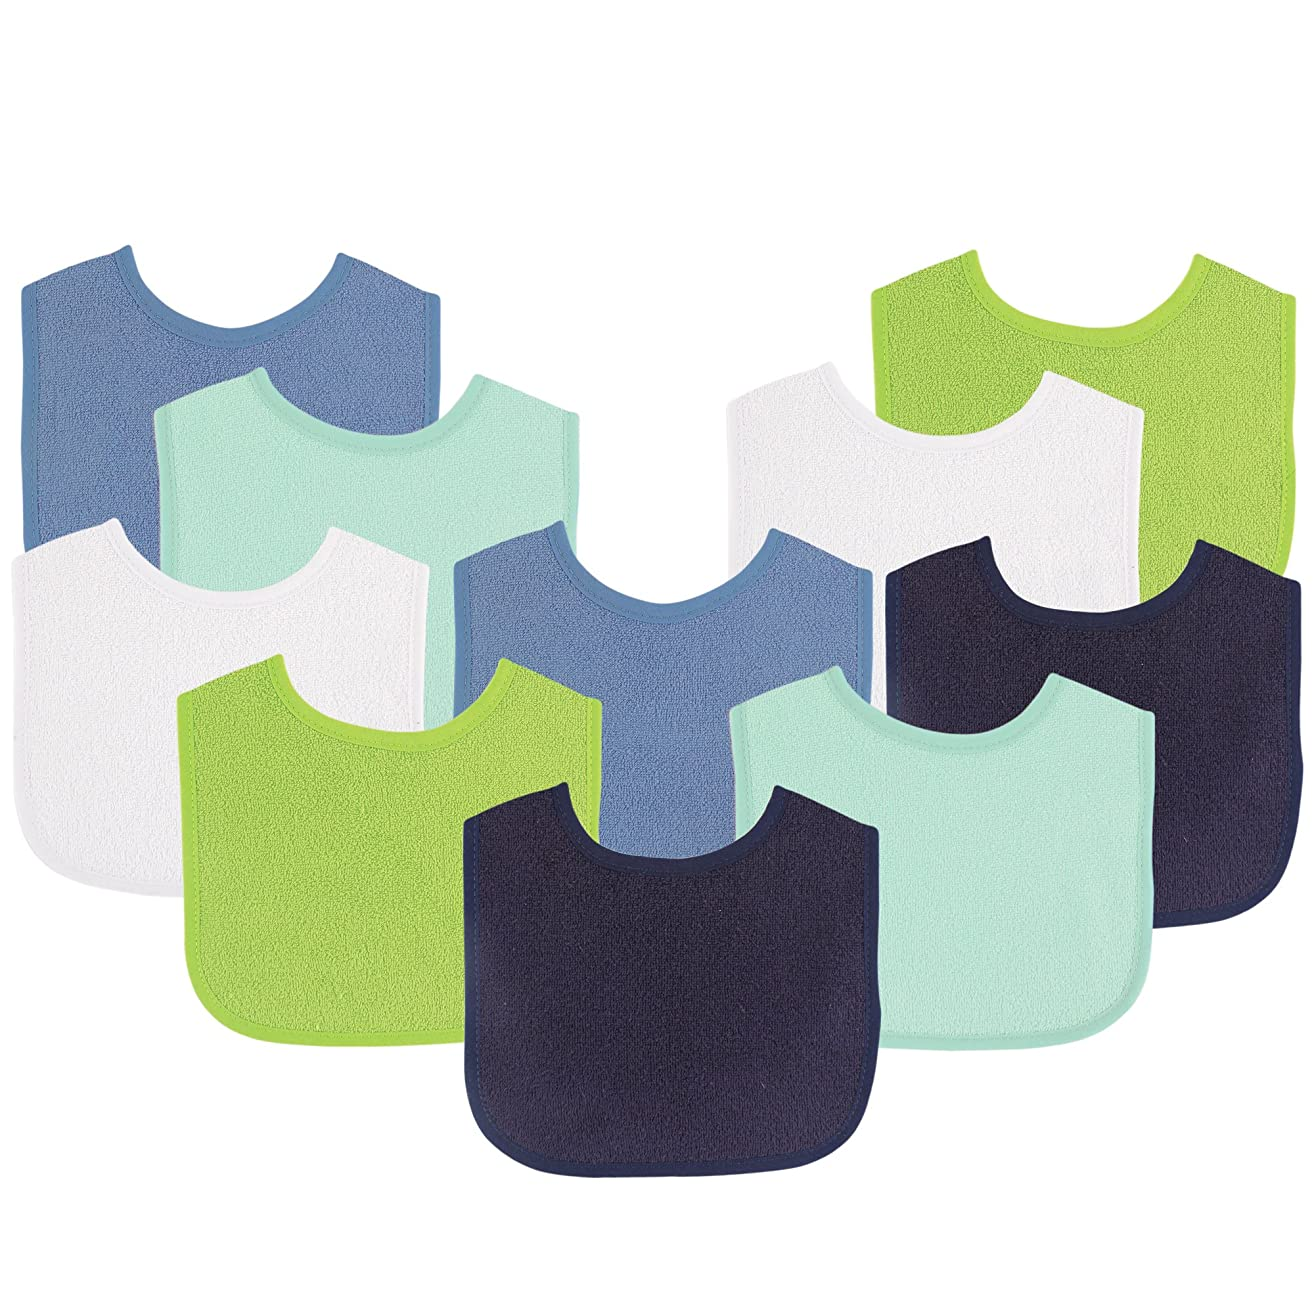 Luvable Friends Baby Bibs Value Pack, Navy/Lime, 6 x 7.5